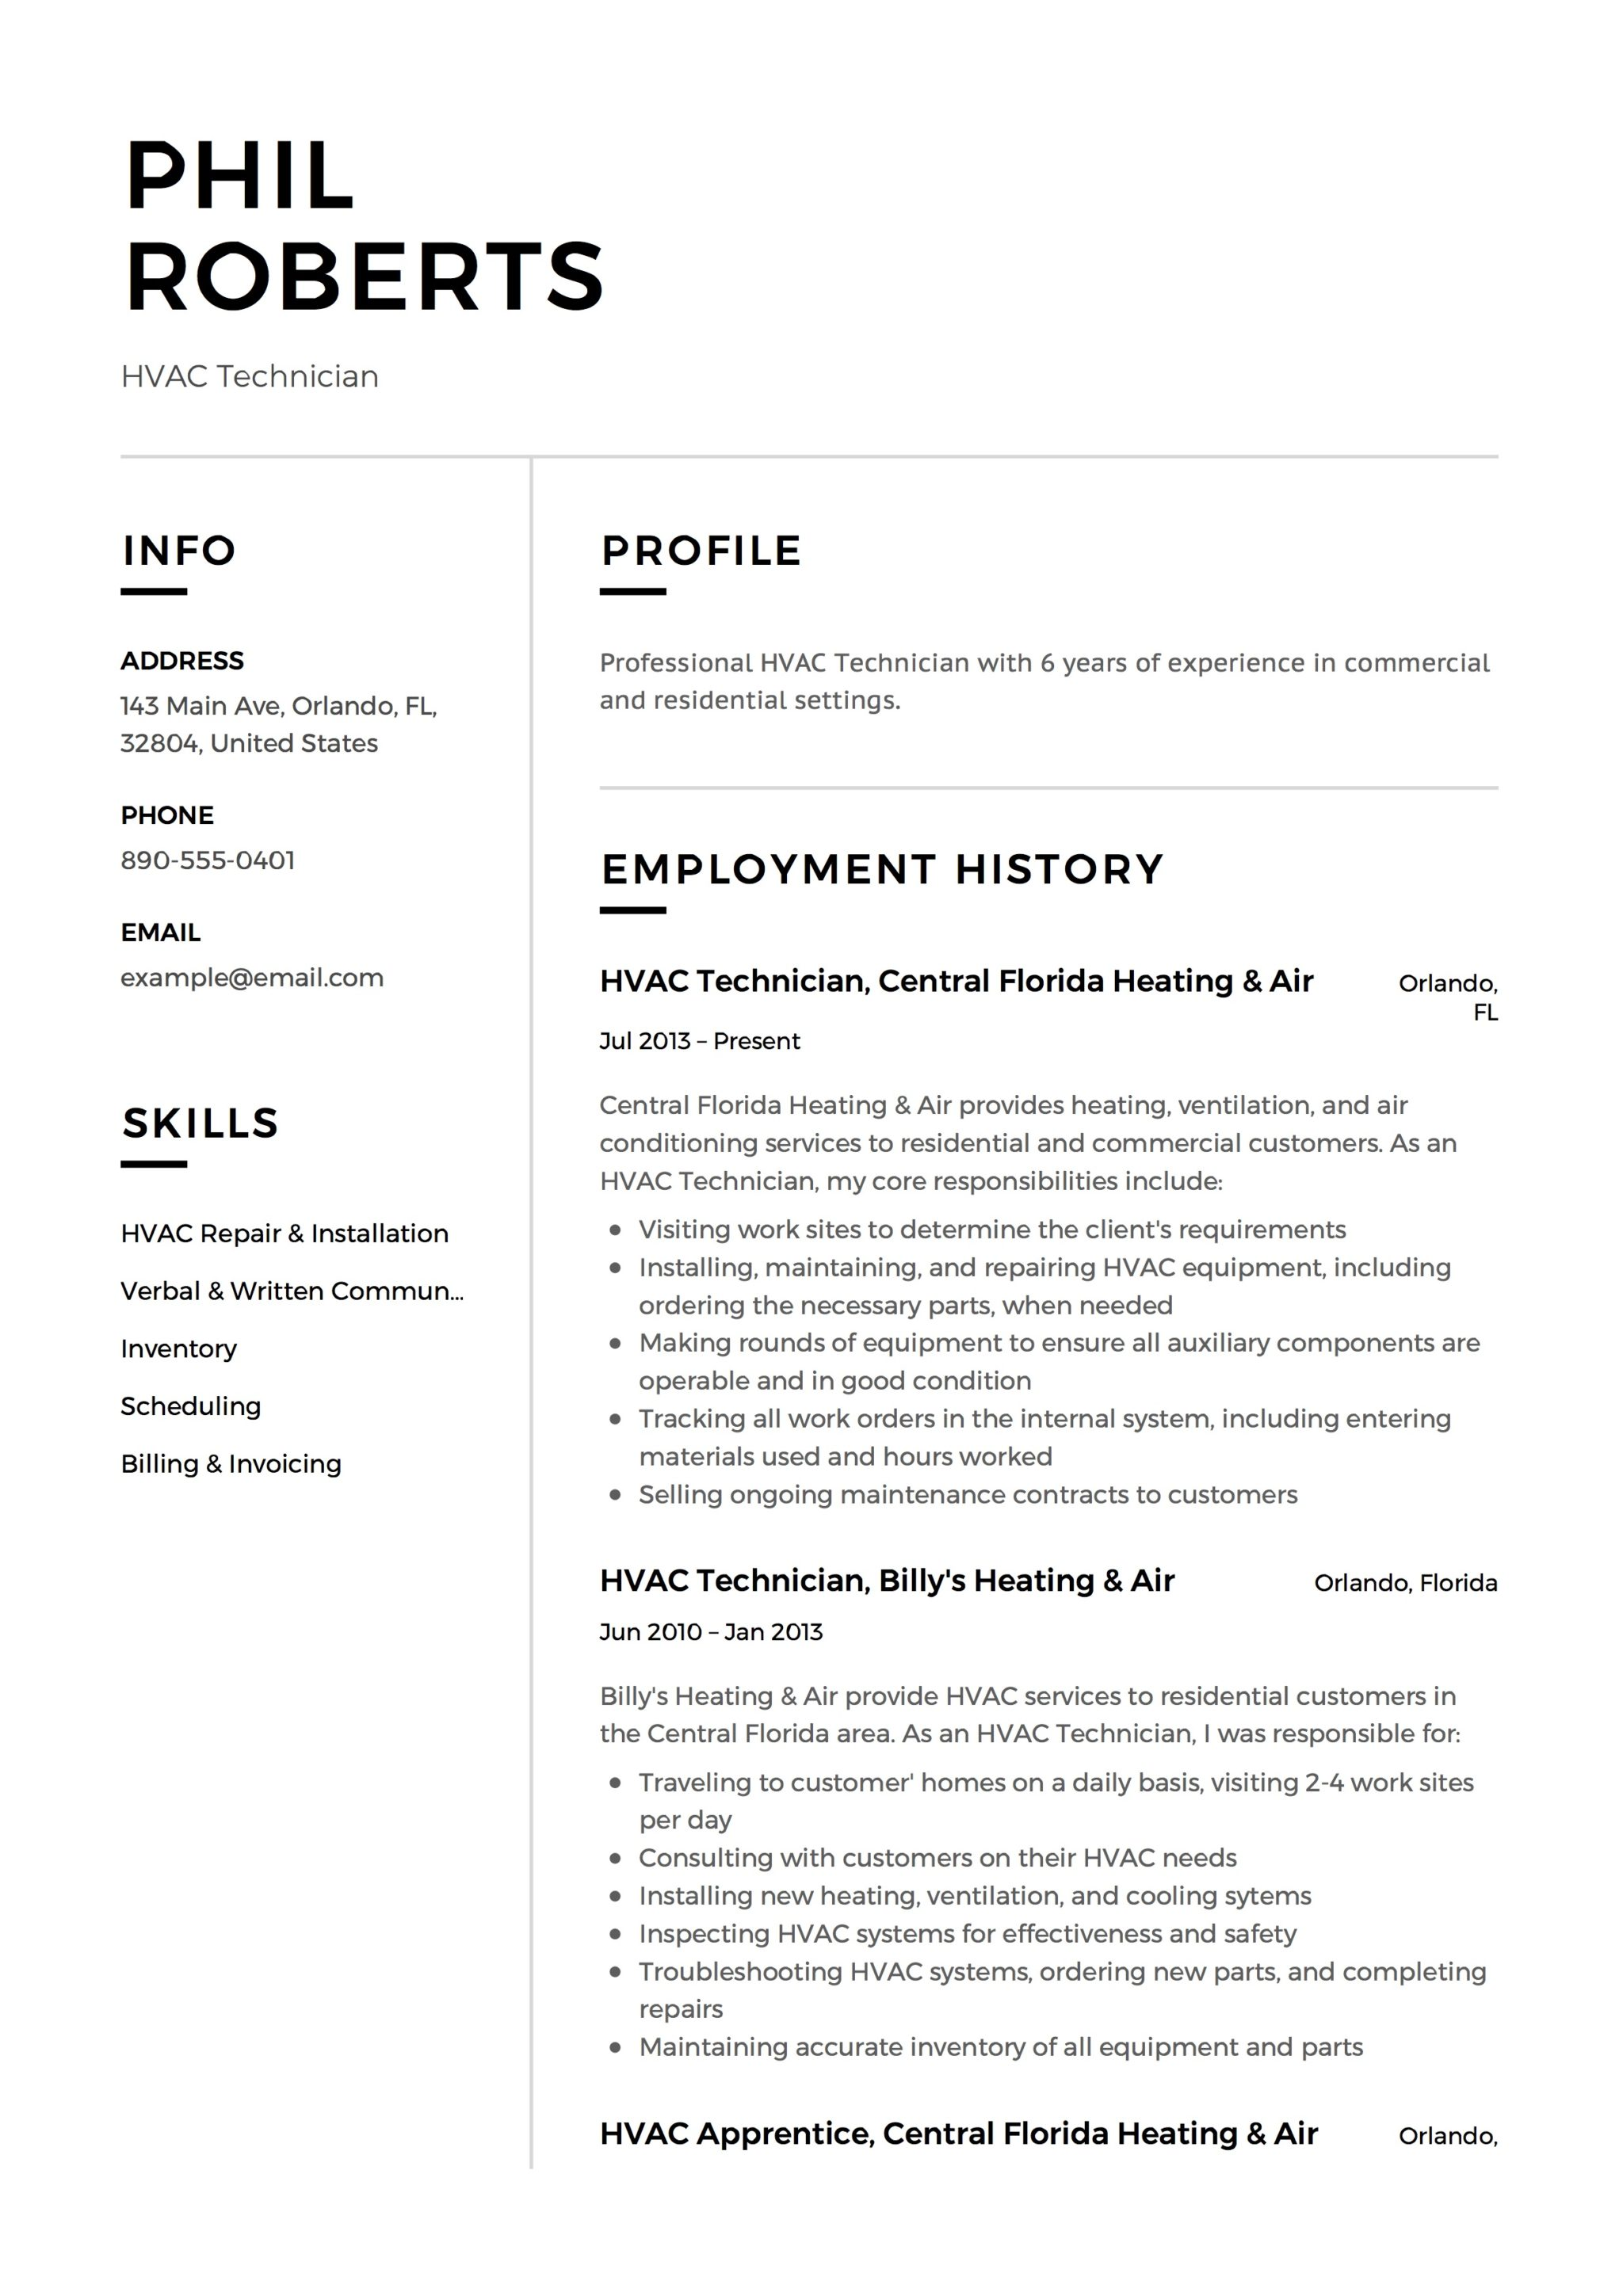 Example Resumes Hvac Technician Resume Resume 12 Samples Pdf Word 2019